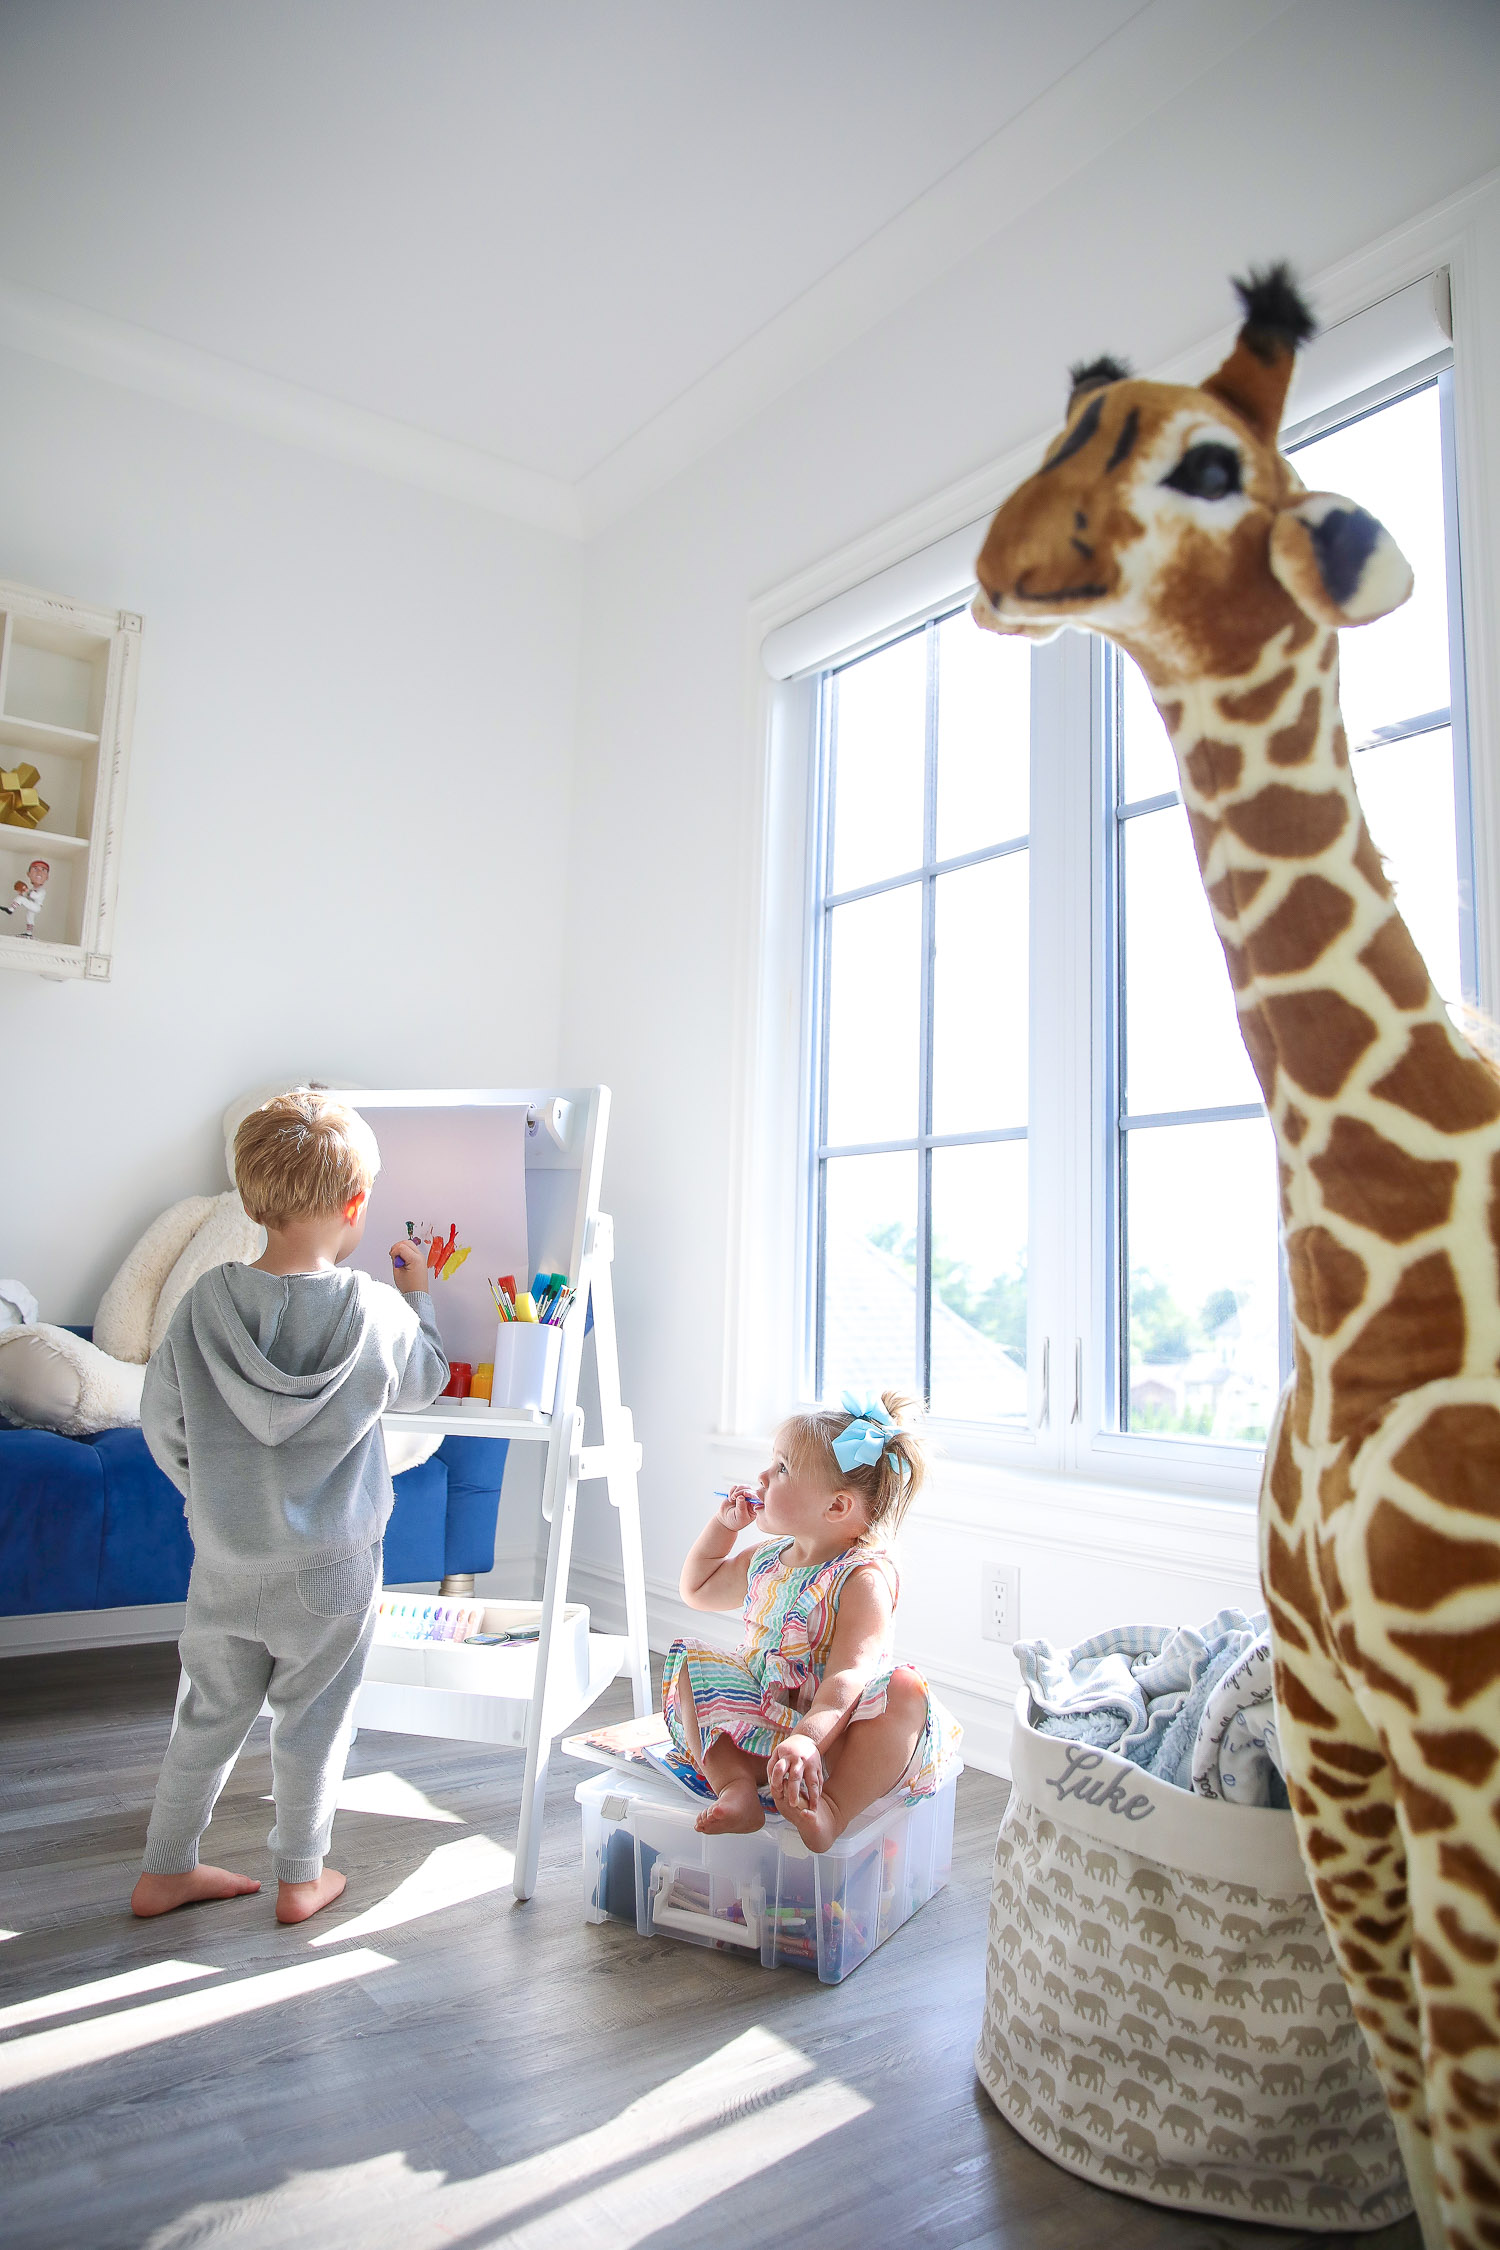 walmart kids home organization must haves, playroom organization ideas, emily gemma, the sweetest thing blog |Instagram Recap by popular US lifestyle blog, The Sweetest Thing: image of a young boy and girl in a play room with a Delta Children whiteboard, Humble Crew storage, Melissa and Doug giraffe, and ArtBin art container.